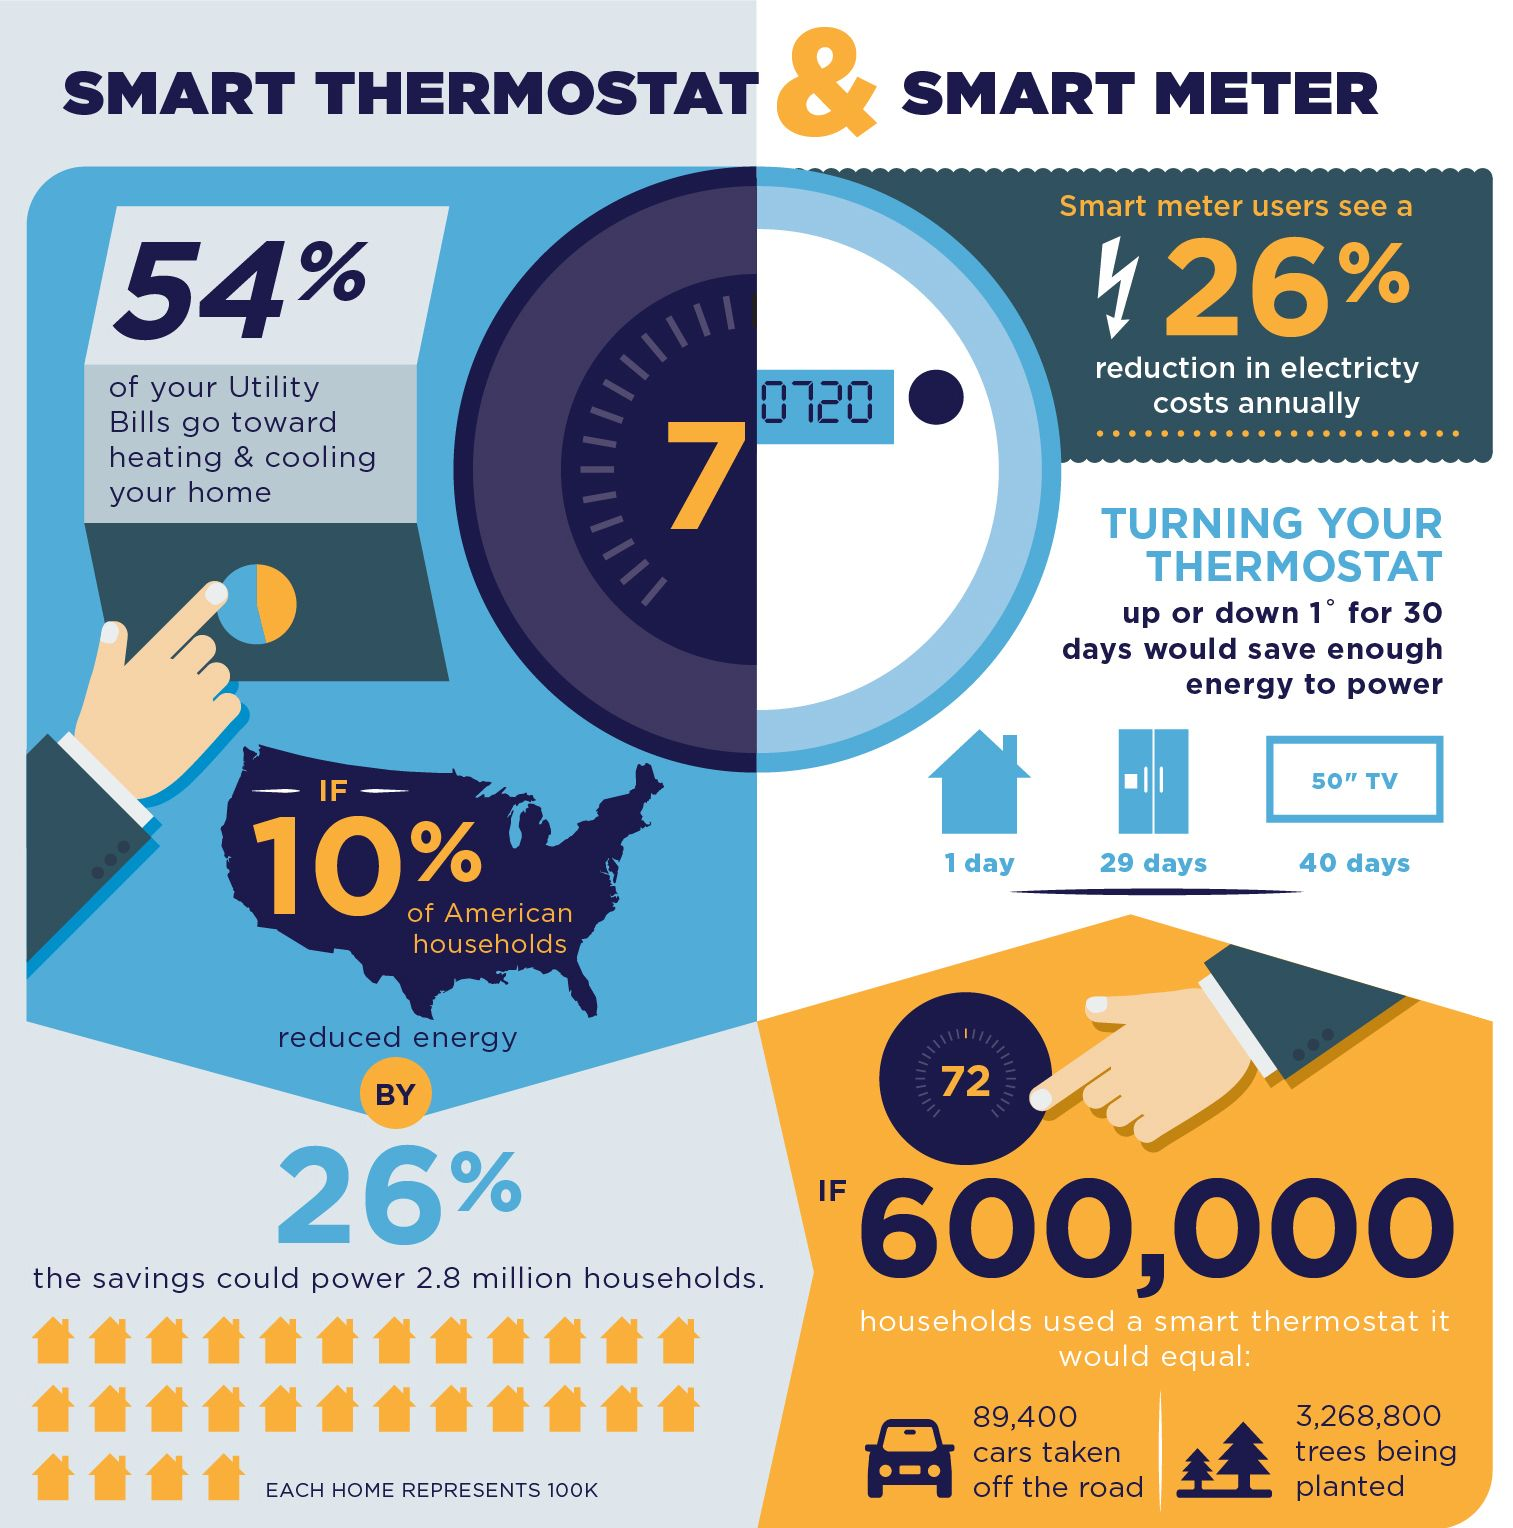 Smart Thermostat And Smart Meters A Look At The Future Of Home Energy Smart Thermostats Thermostat Energy